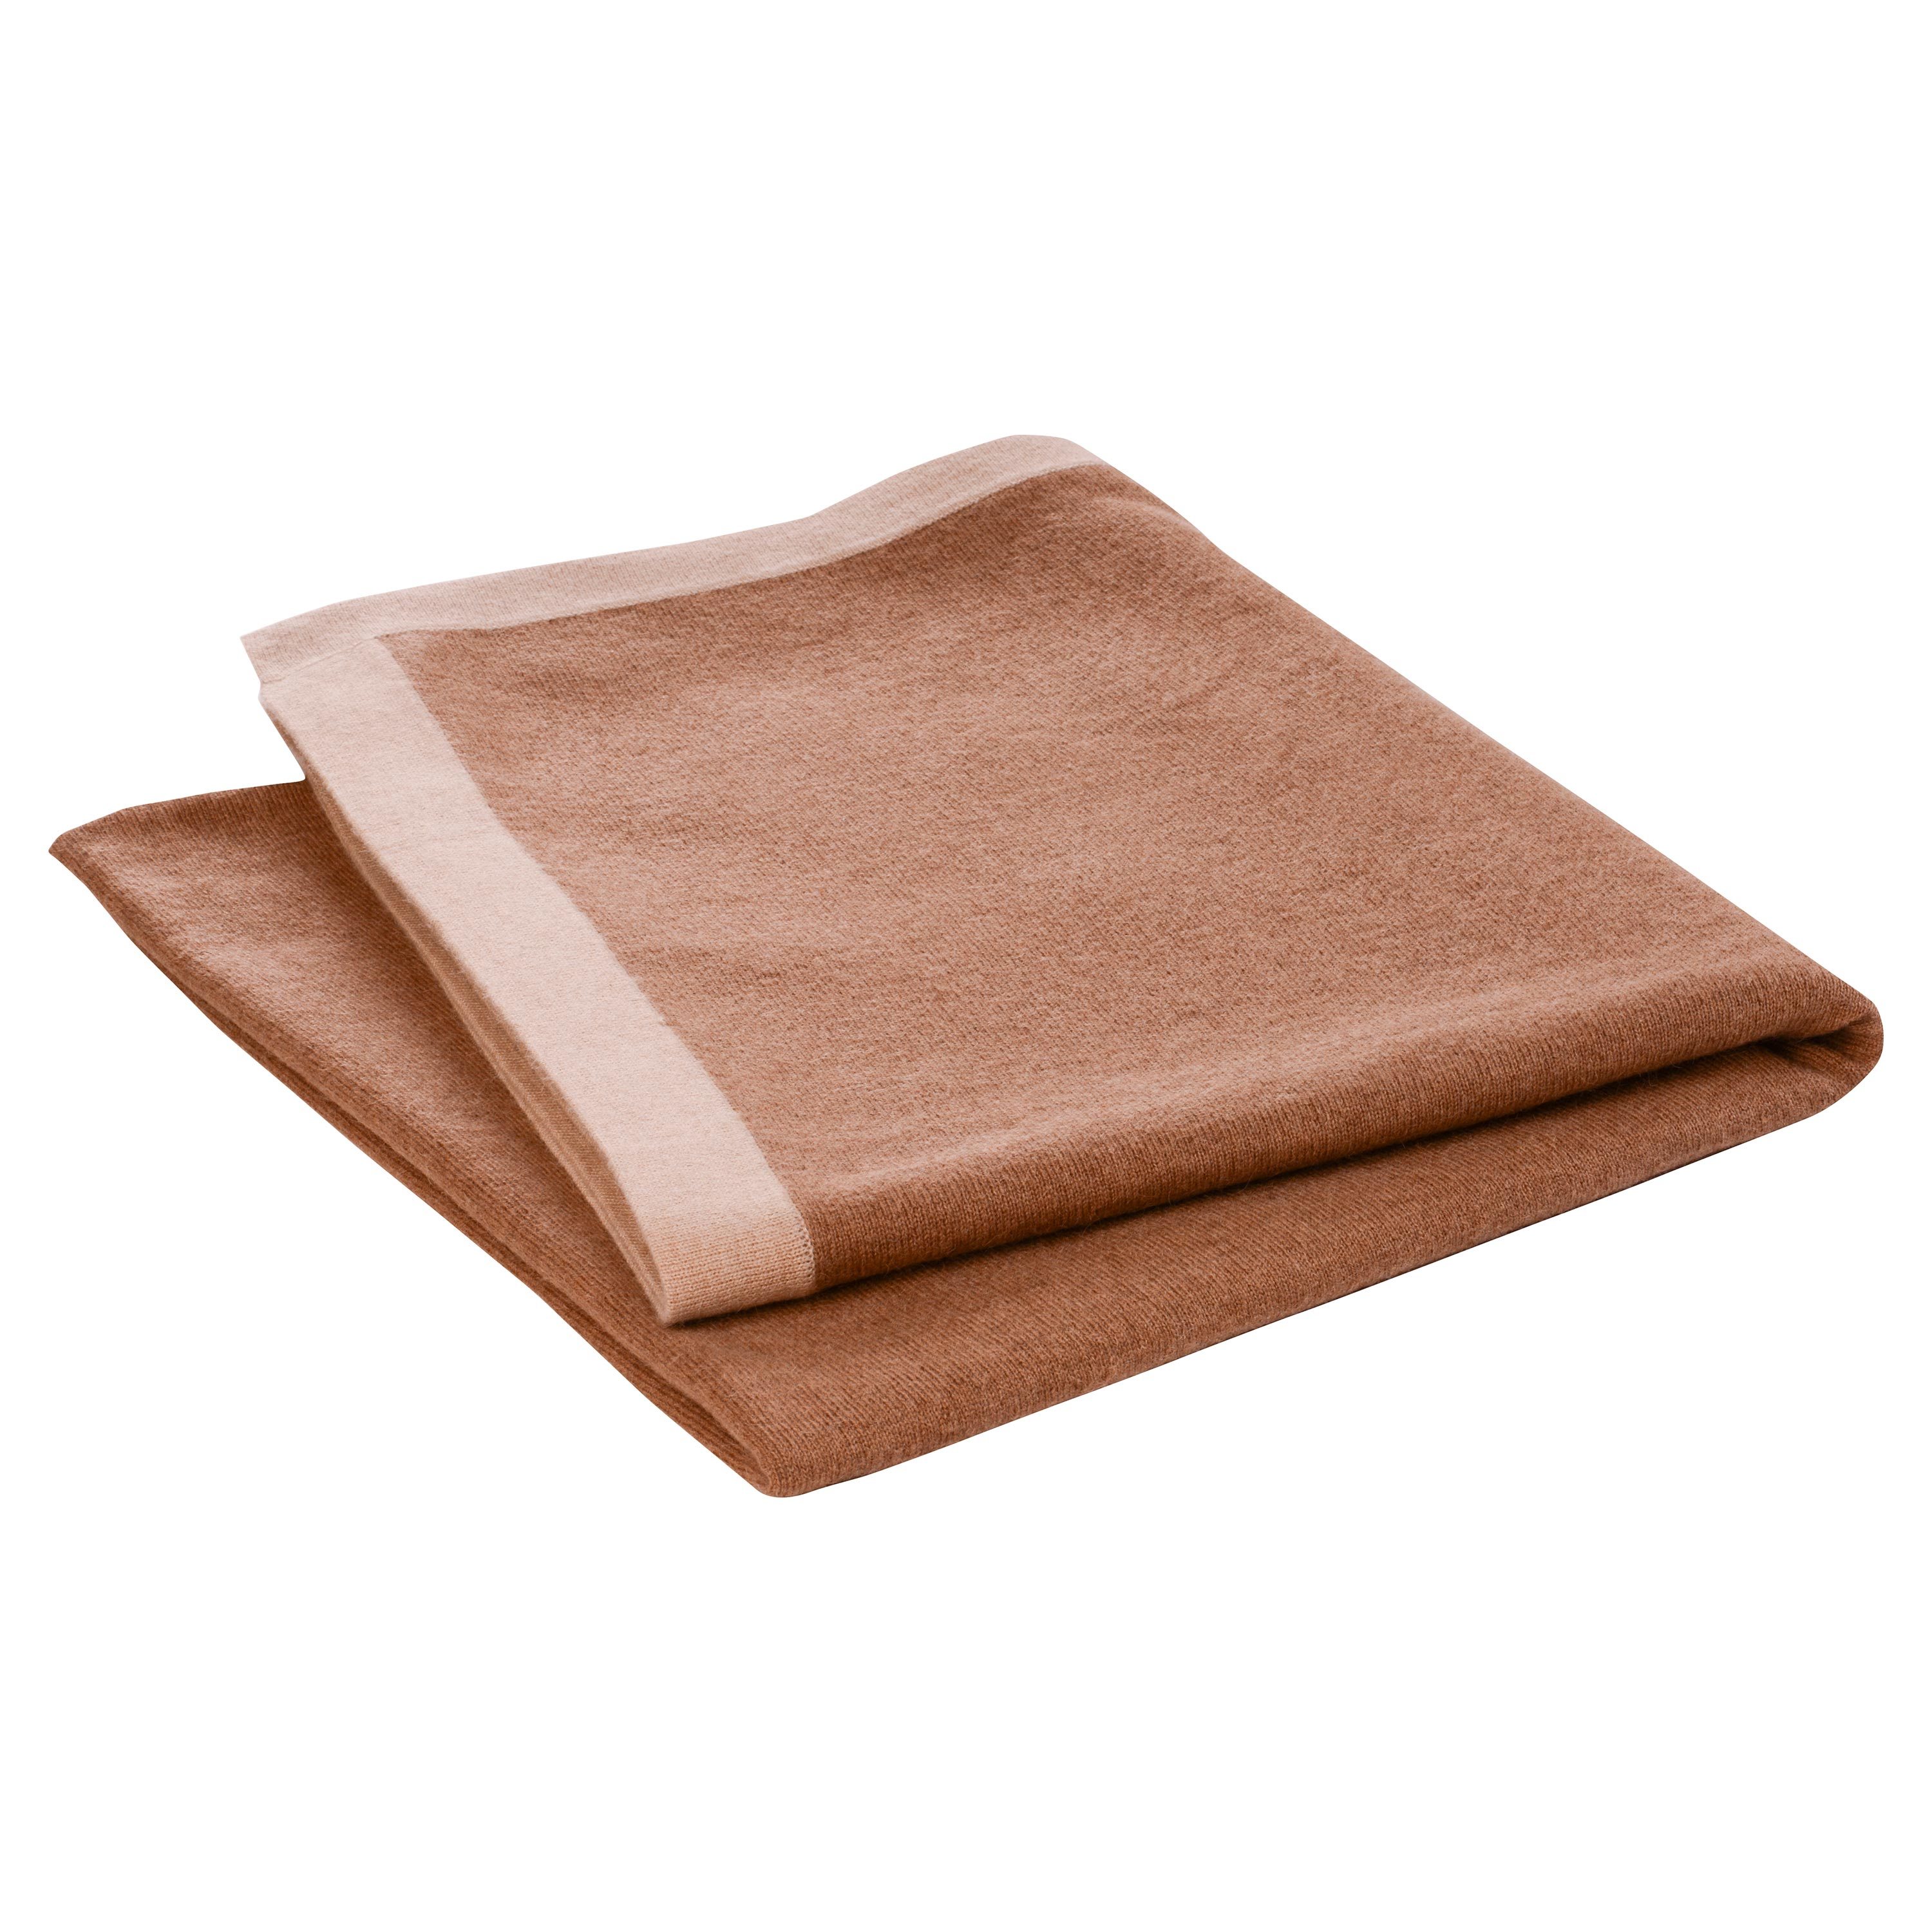 Stephie Classic Brown Bordered Camel Hair Blanket